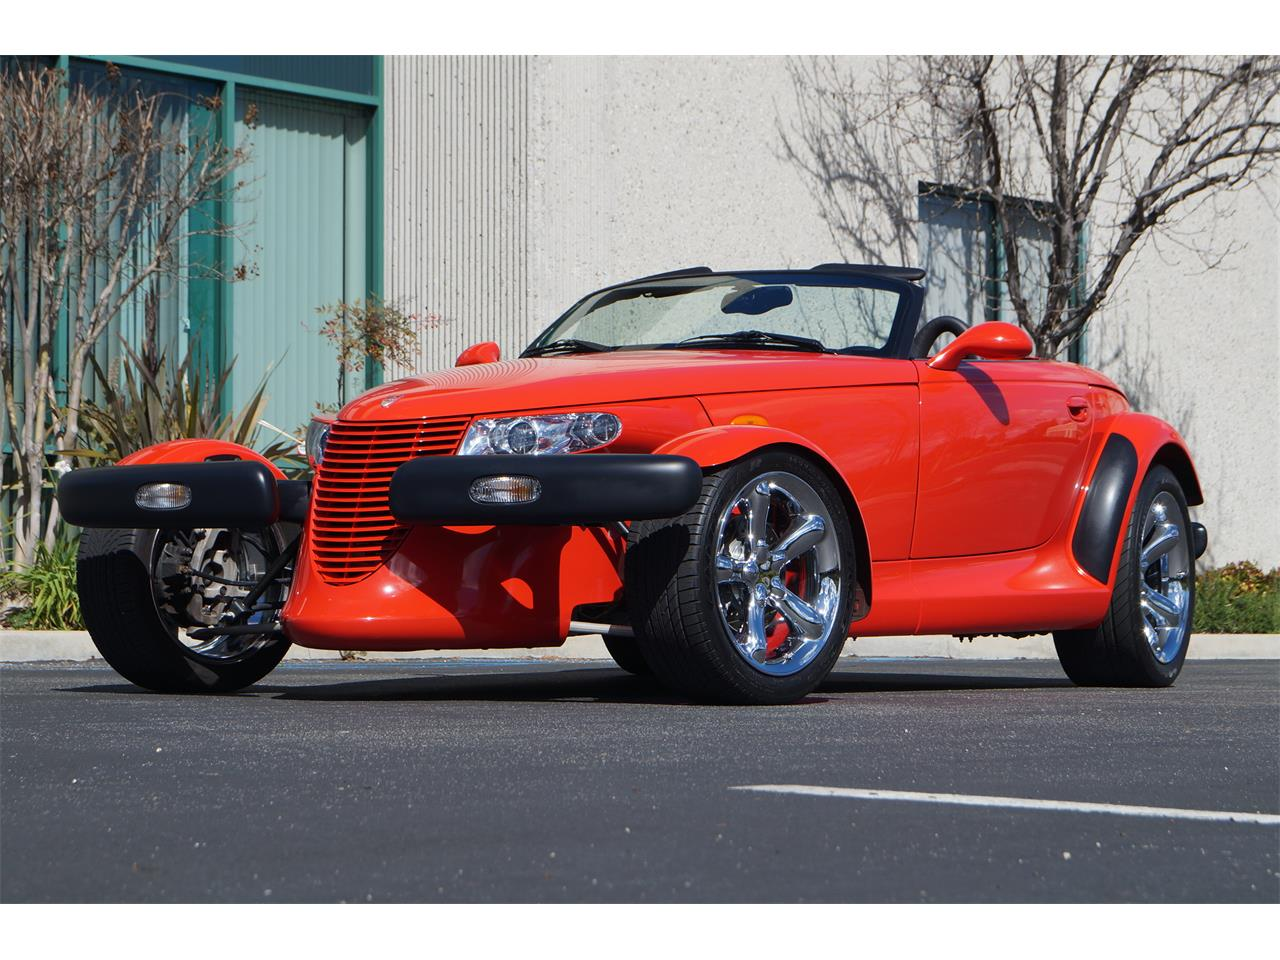 2000 Plymouth Prowler for sale in Thousand Oaks, CA – photo 42